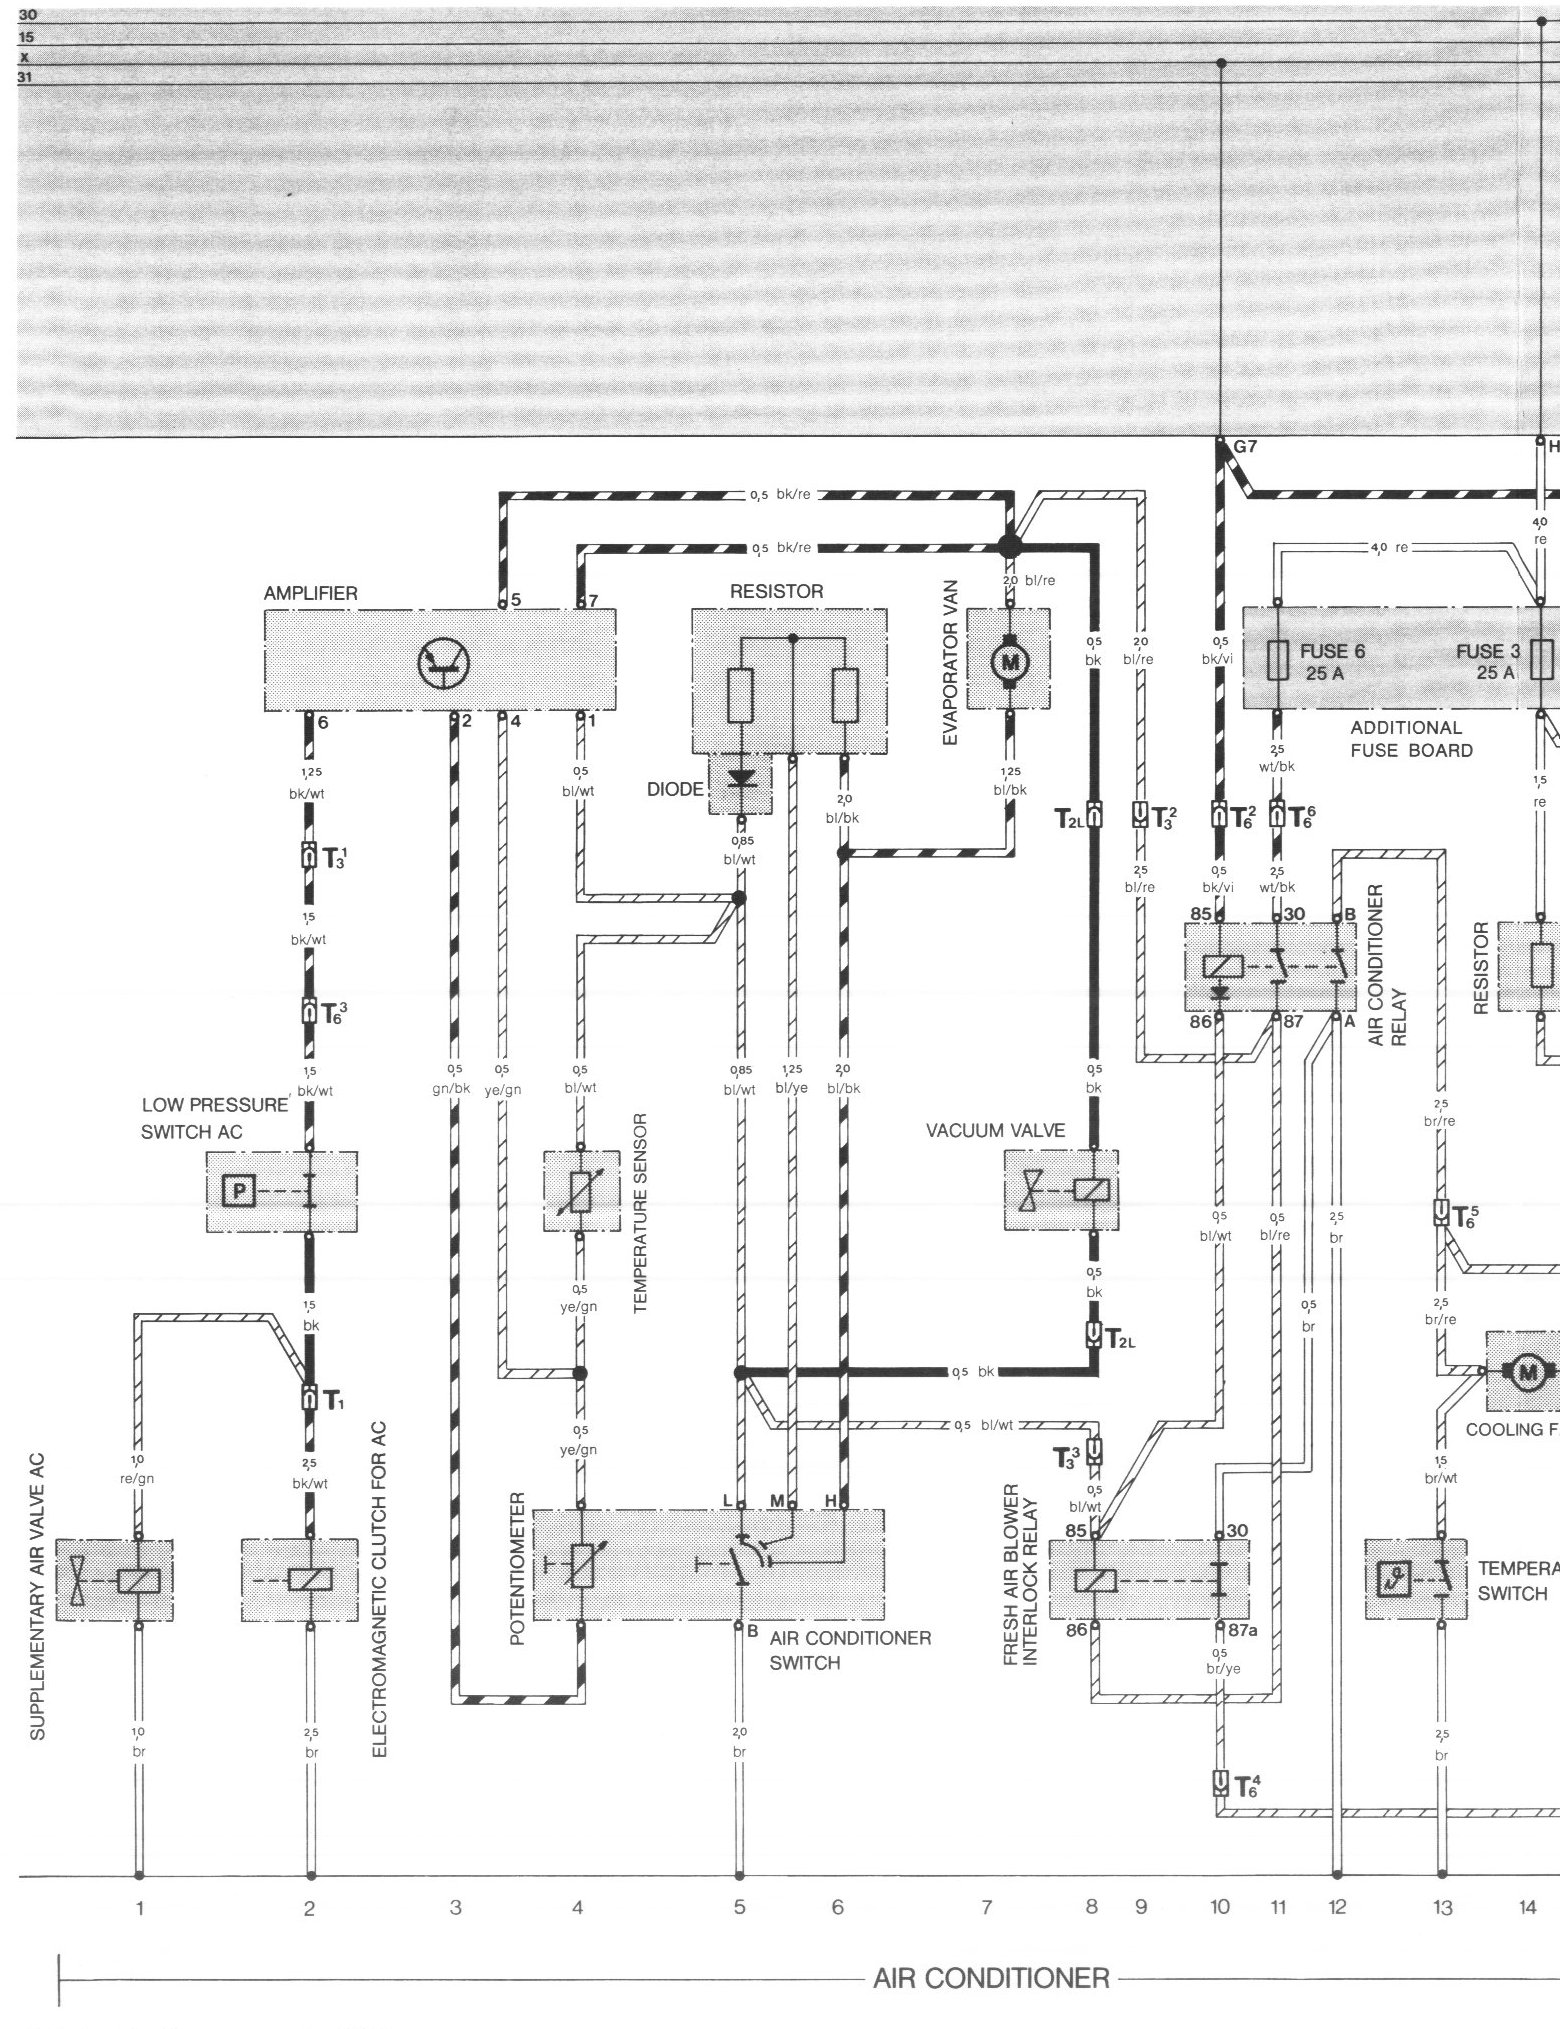 944_84_AC_1 pelican parts porsche 924 944 electrical diagrams 1983 porsche 944 fuse box diagram at couponss.co